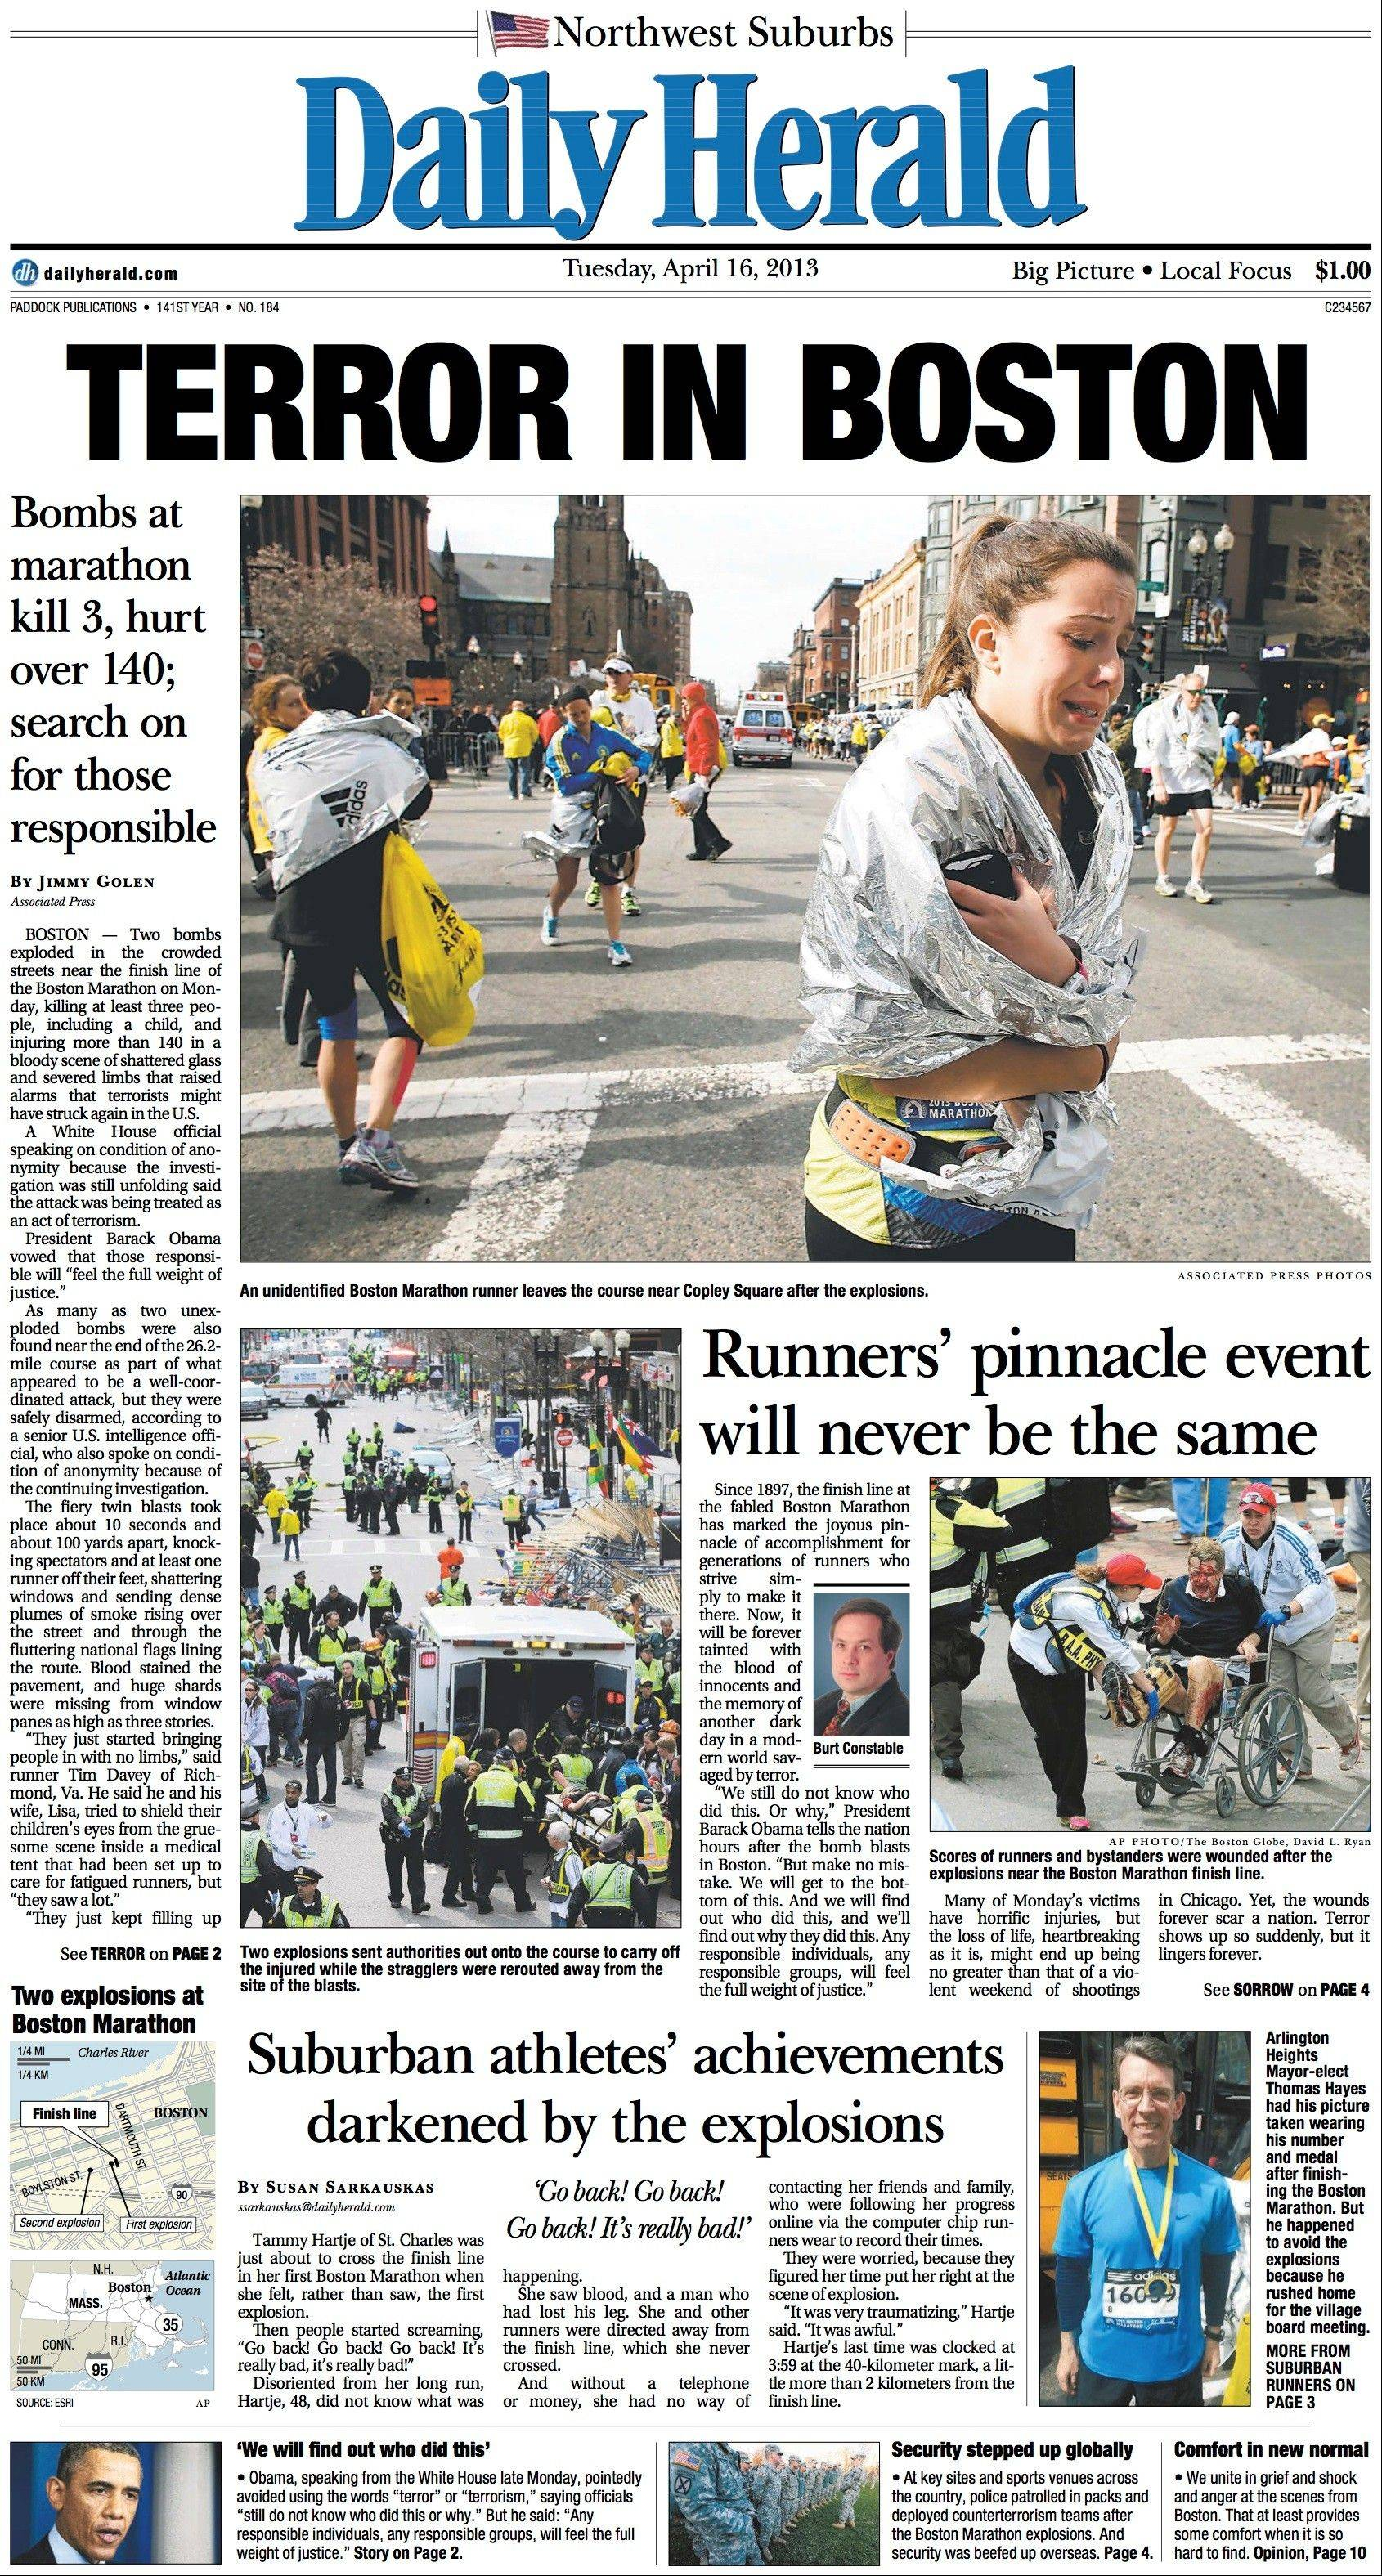 April 16: Bombs at the Boston Marathon shocked the world. Five were killed, several others were maimed, and the manhunt for the suspects began.